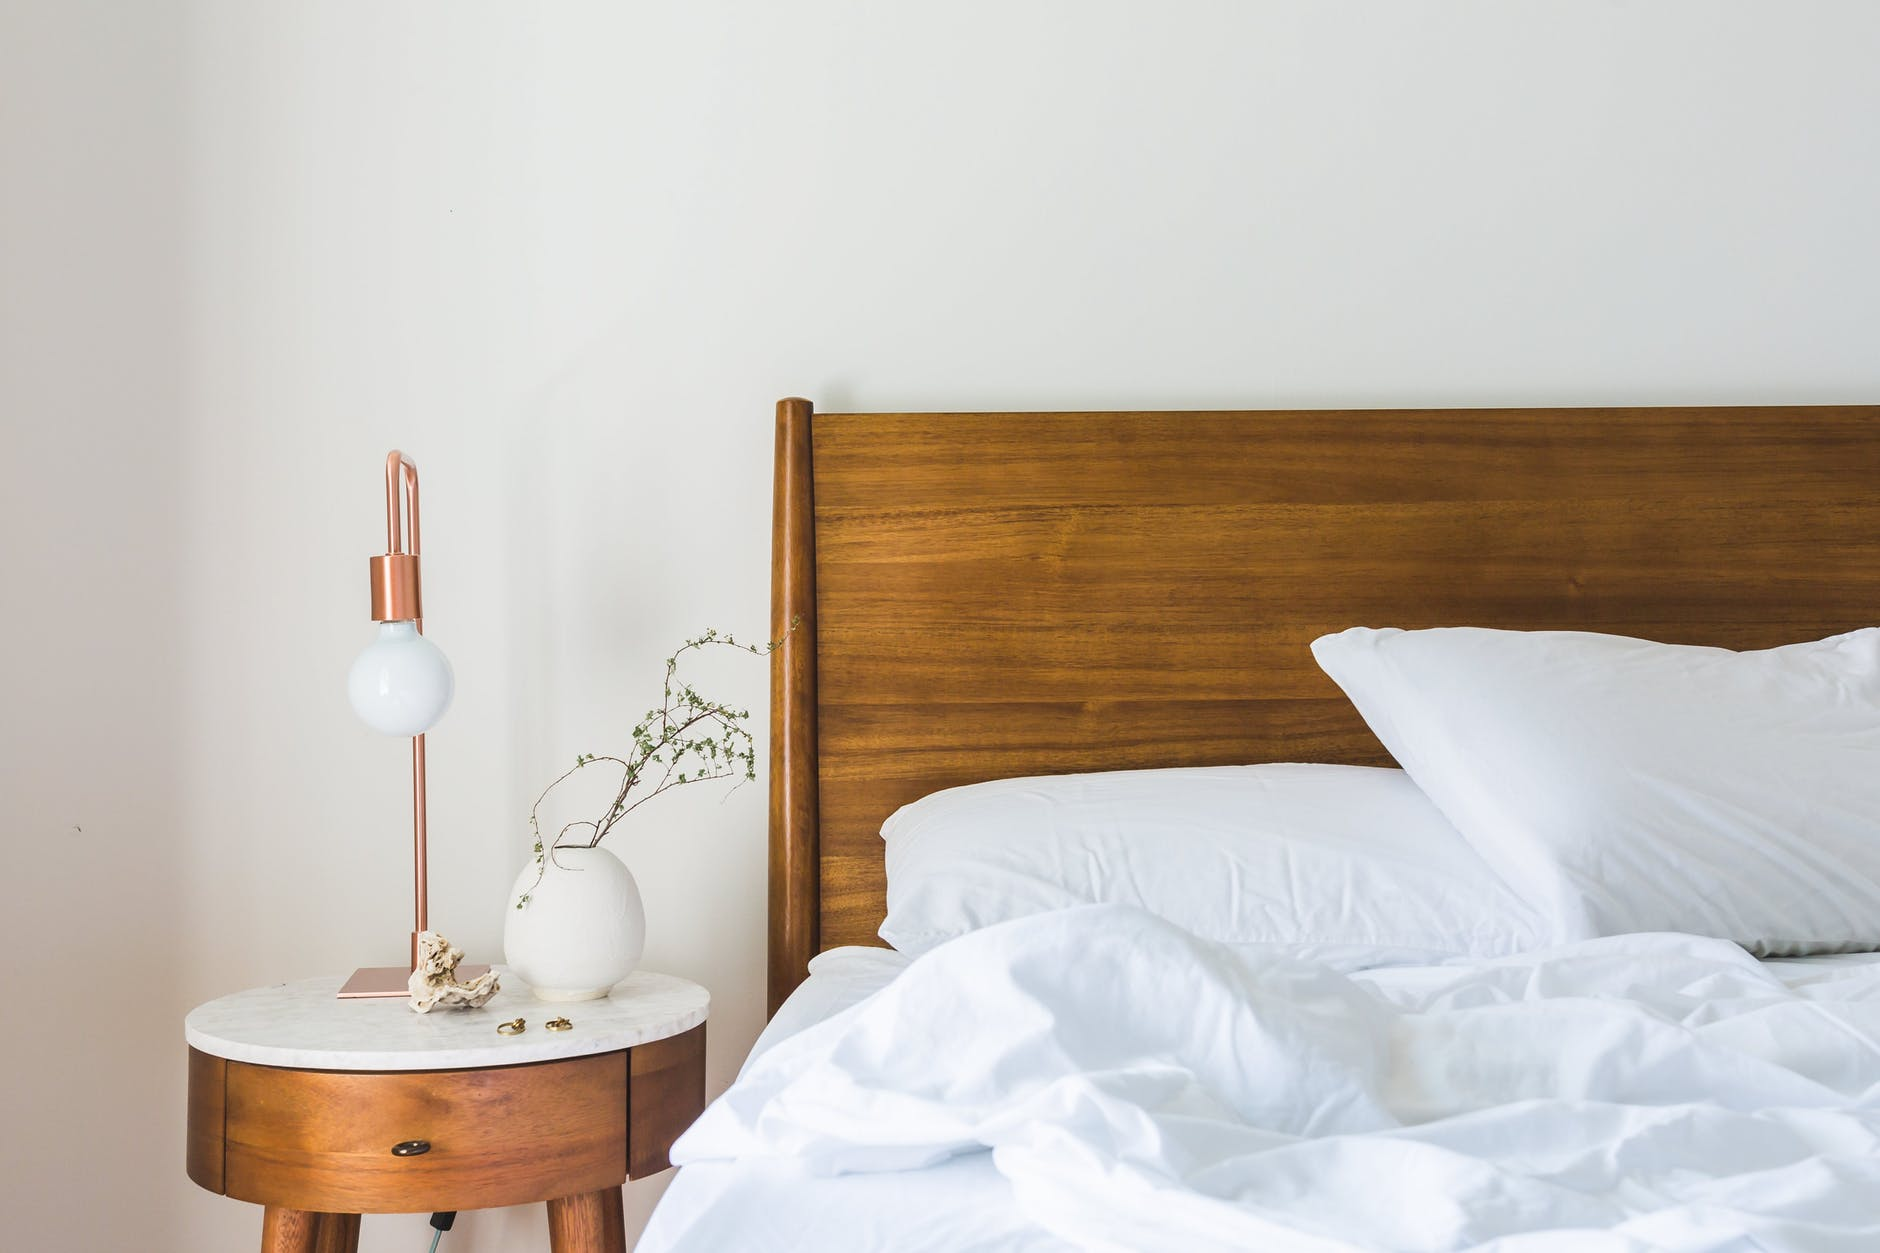 A bed and wooden headboard, with a side table that has a plant and lamp on it.